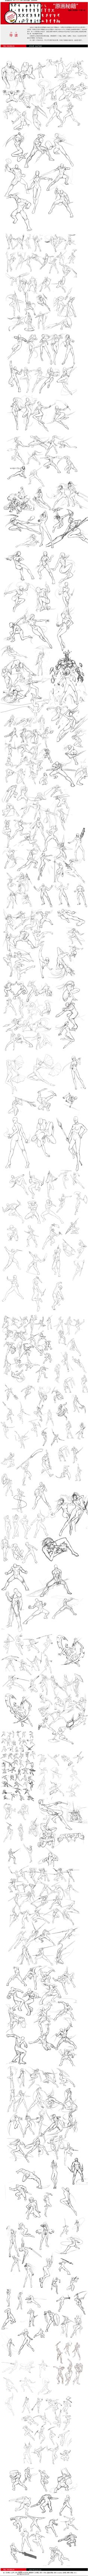 Figure Pose Reference - 采集图片